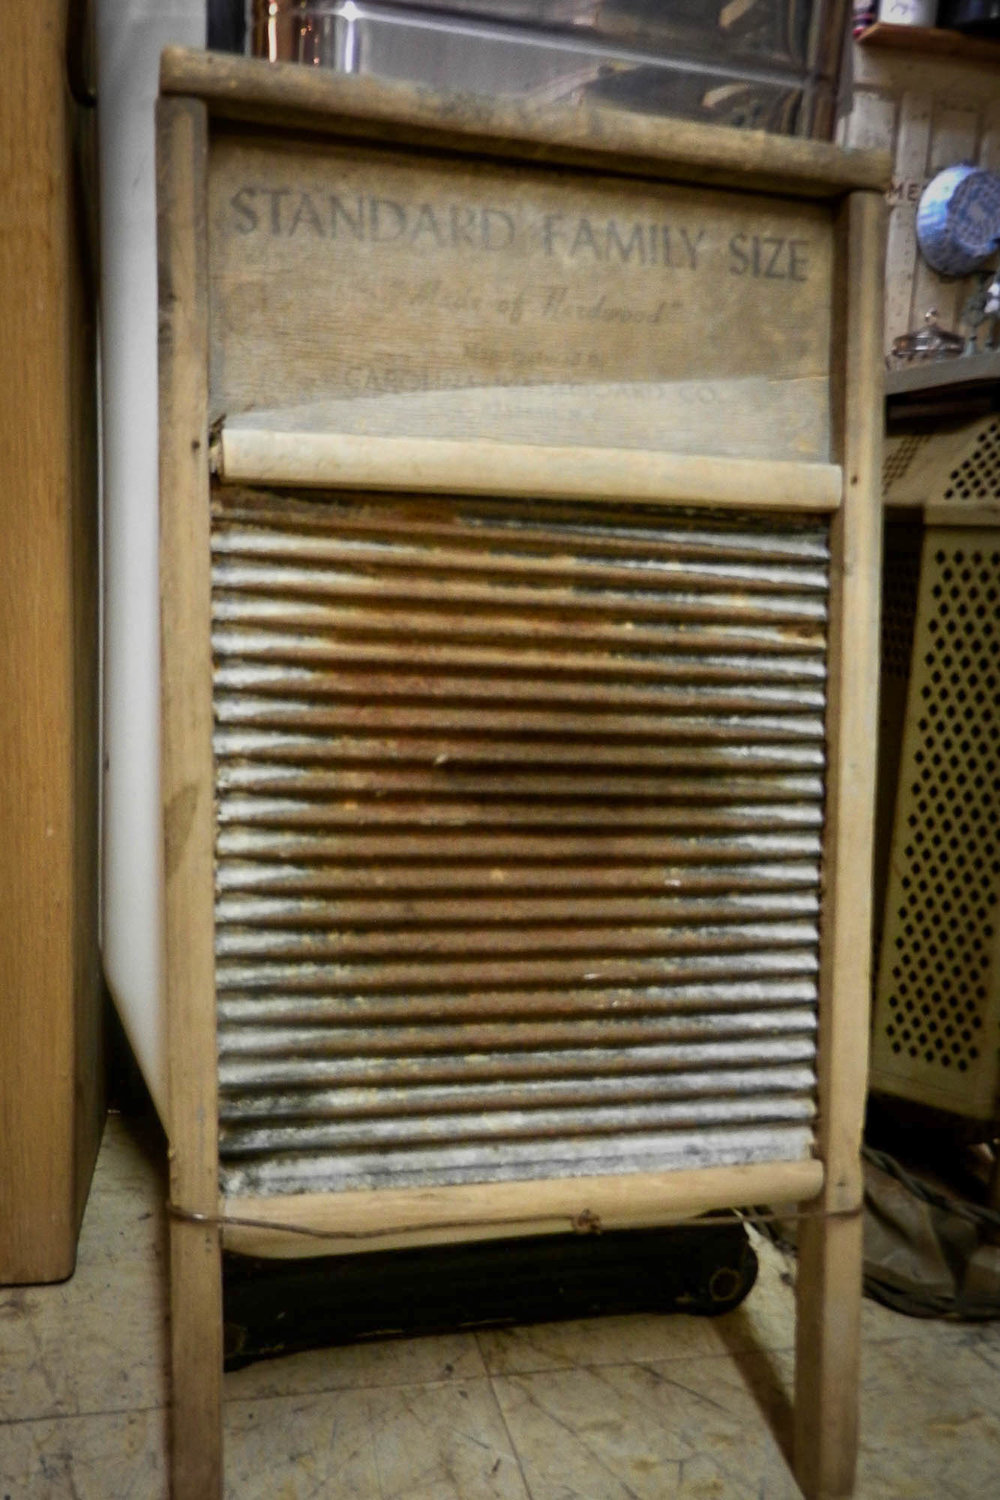 Antique Washboard | Refindings York, PA | Architectural Salvage & Antiques